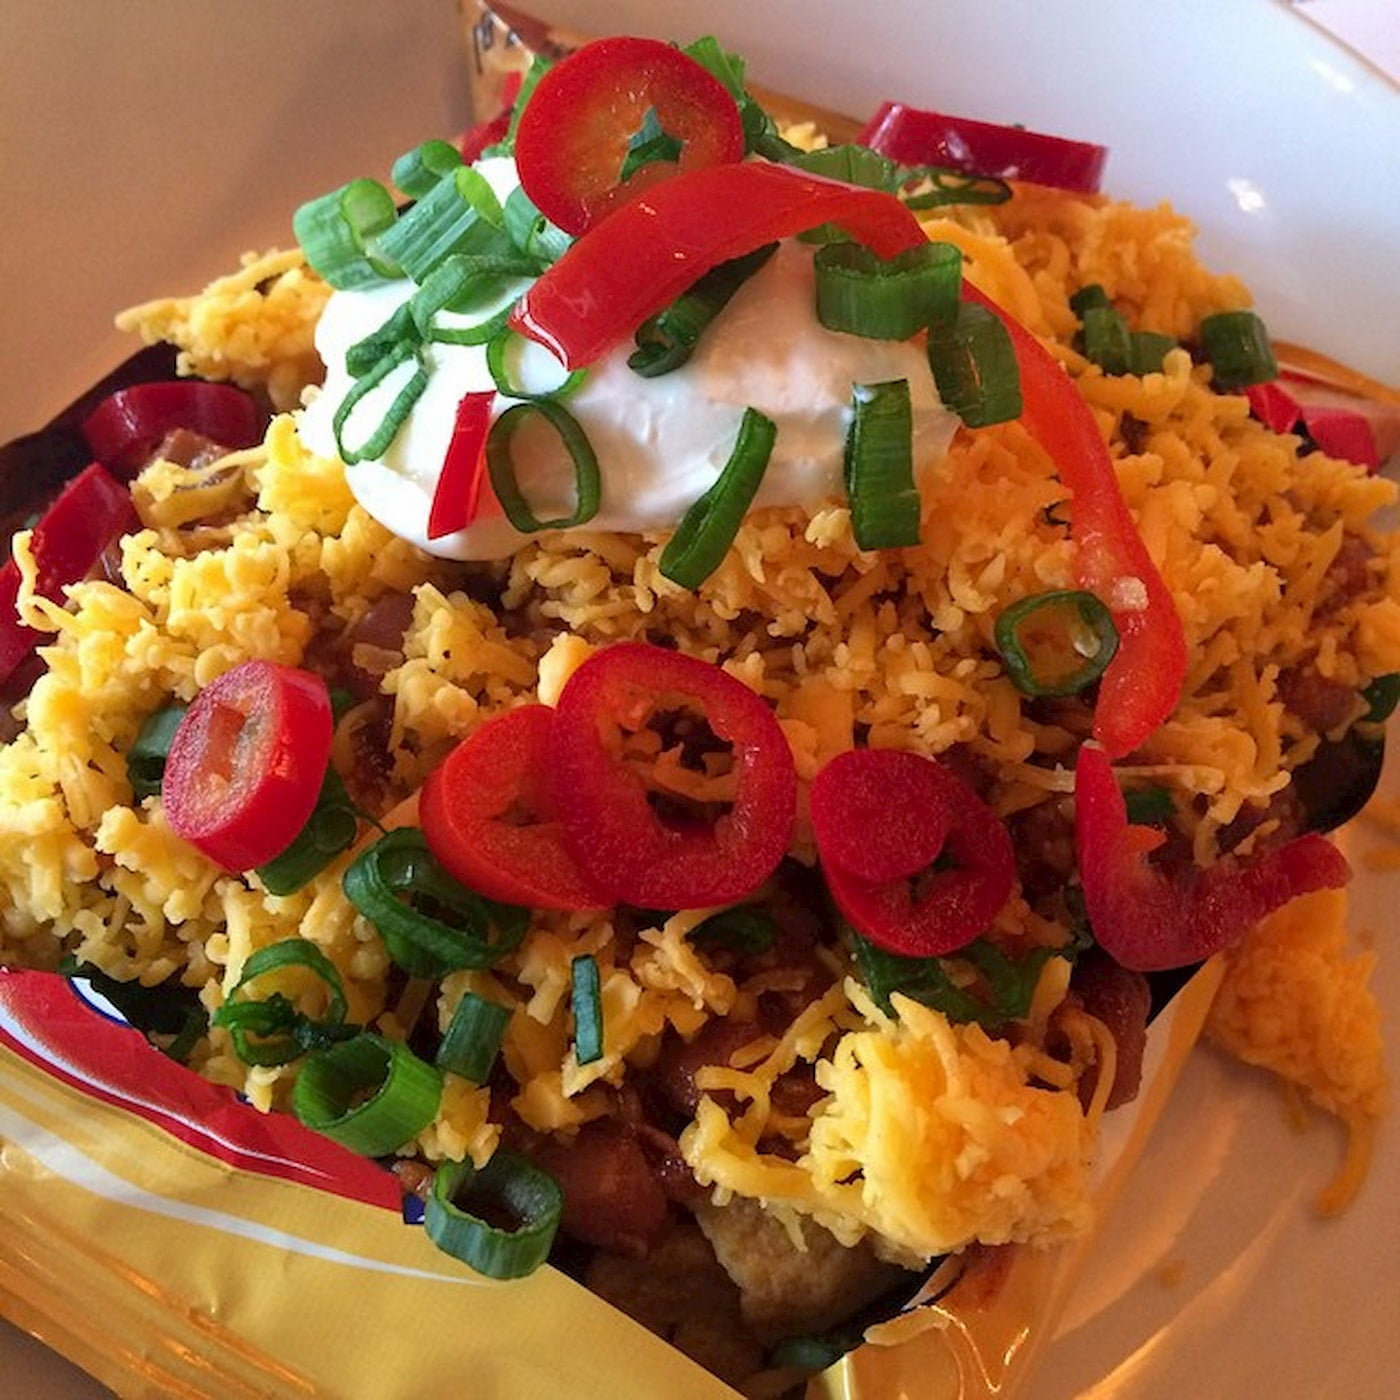 Frito pie with peppers and sour cream.